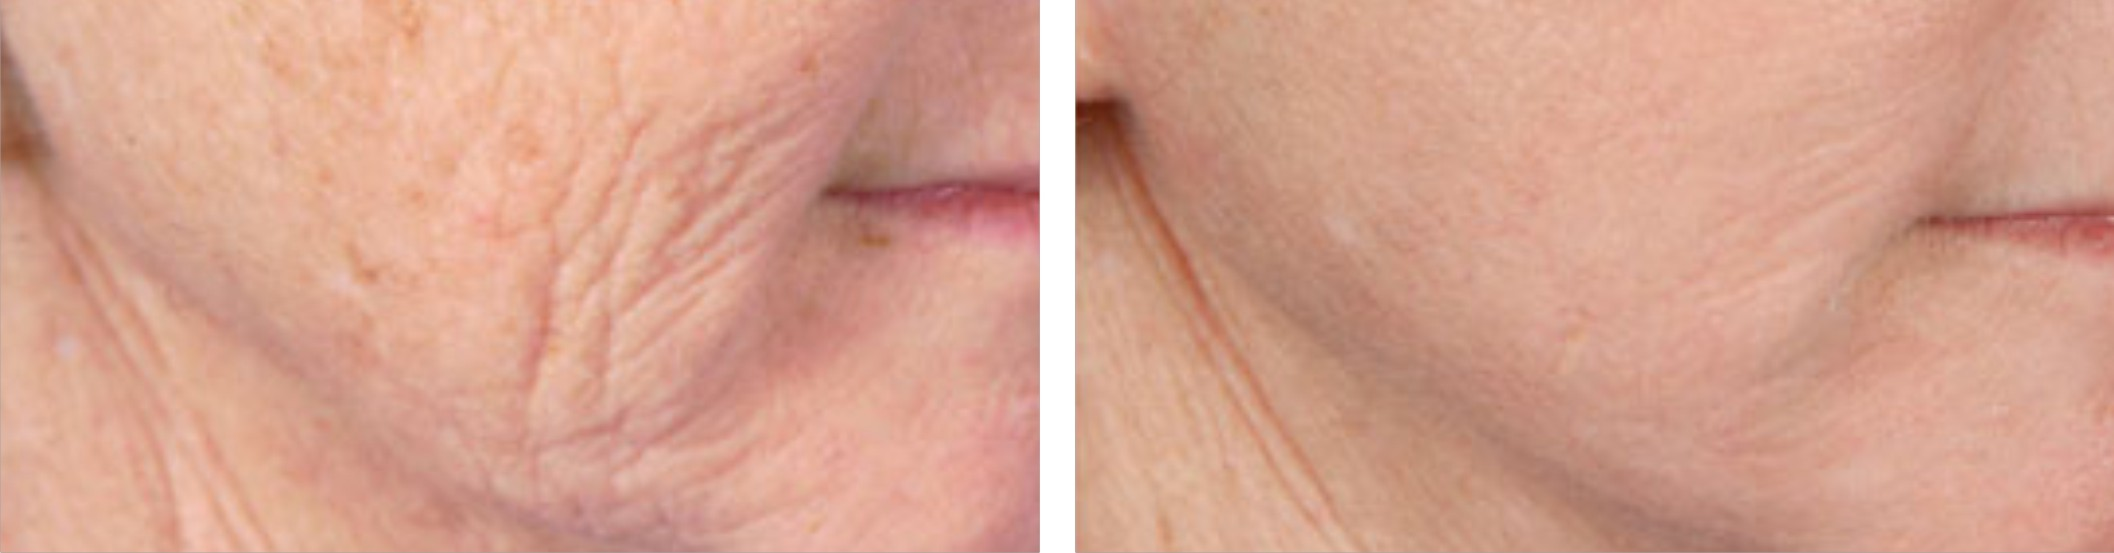 Radio Frequency Skin Tightening (RF) Image One